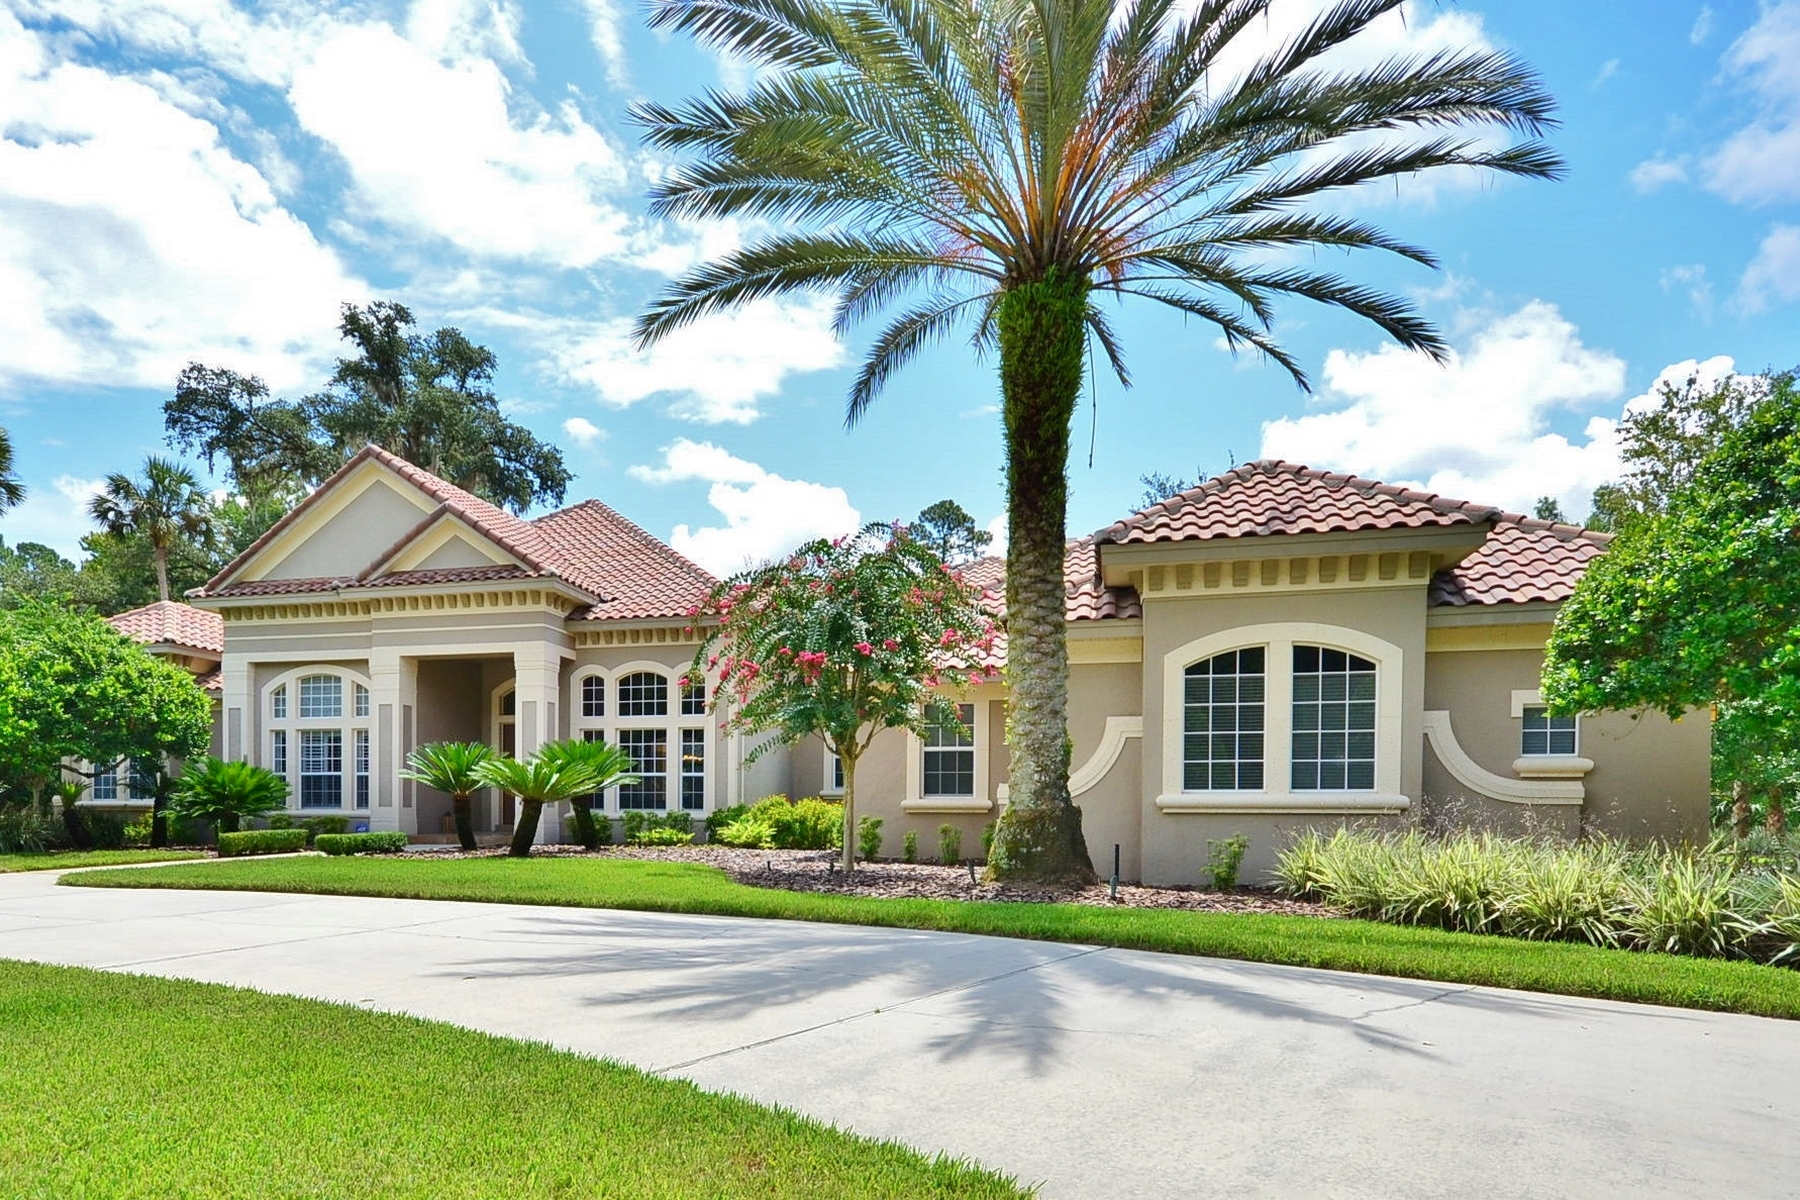 Casa Unifamiliar por un Venta en Lake Mary, Florida 167 Harston Court Lake Mary, Florida 32746 Estados Unidos